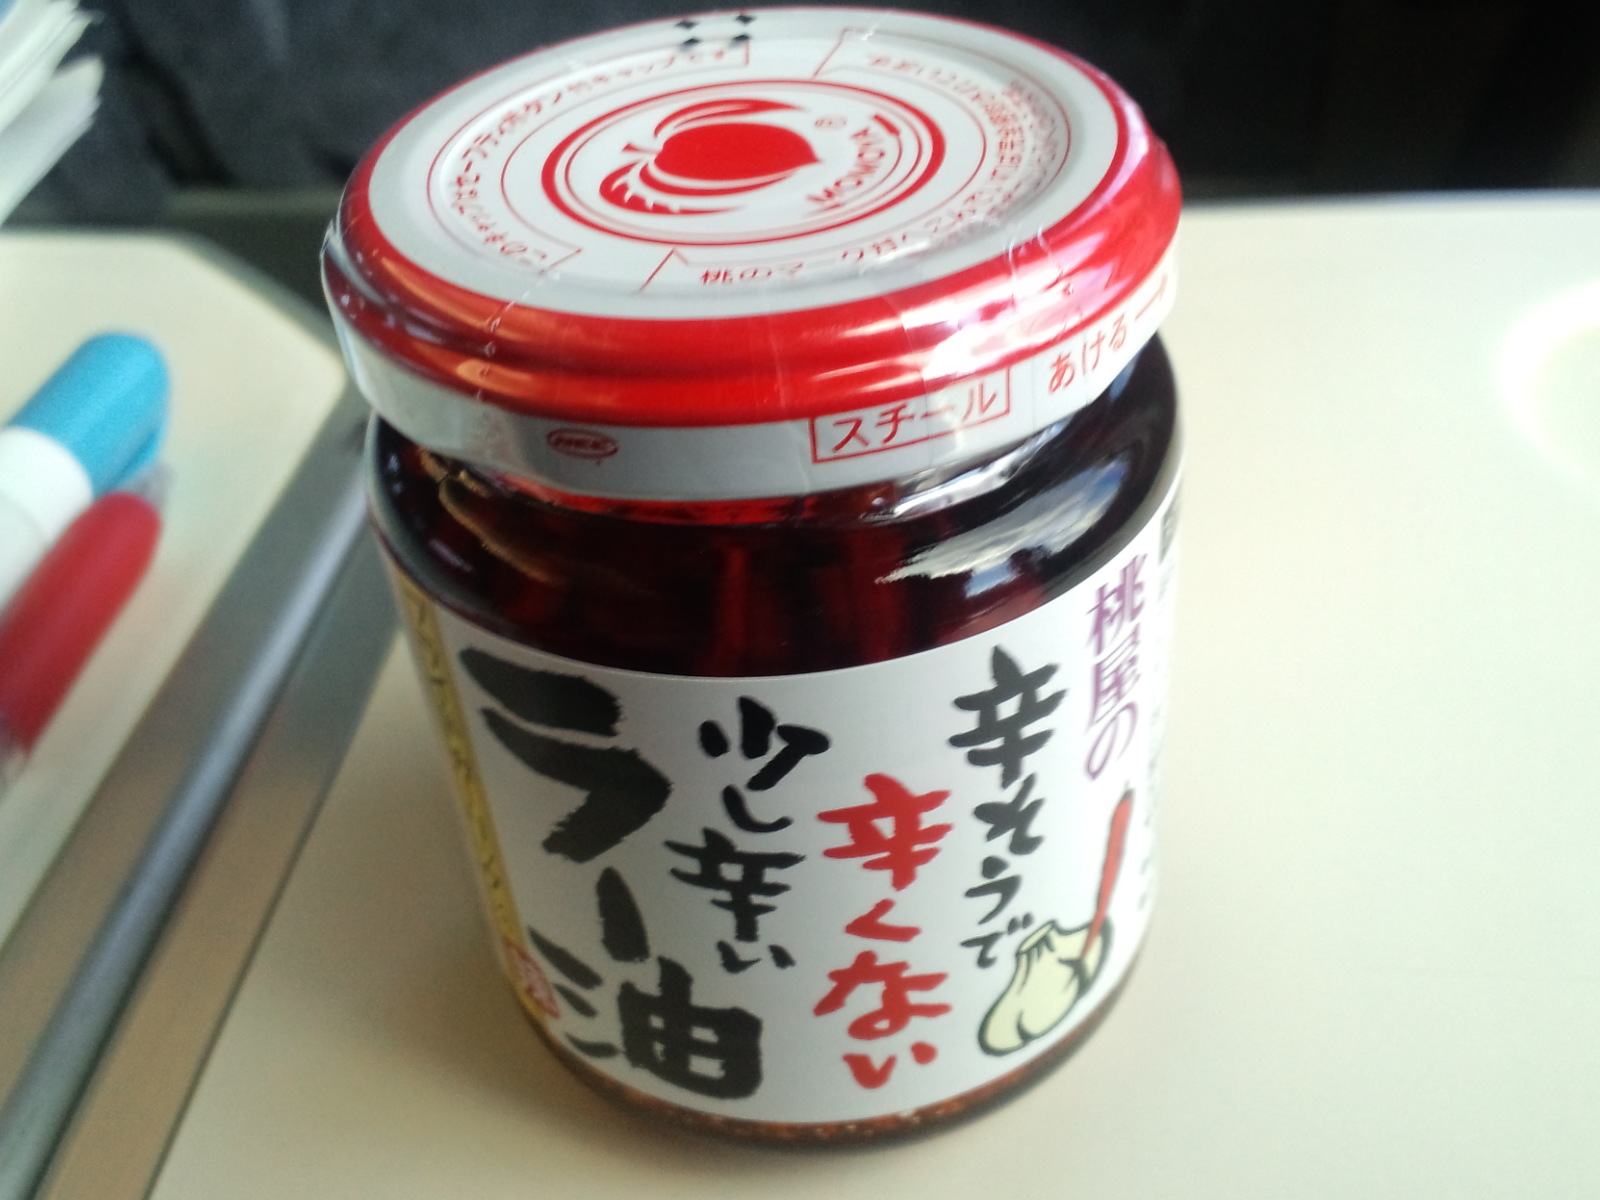 At last I got it.